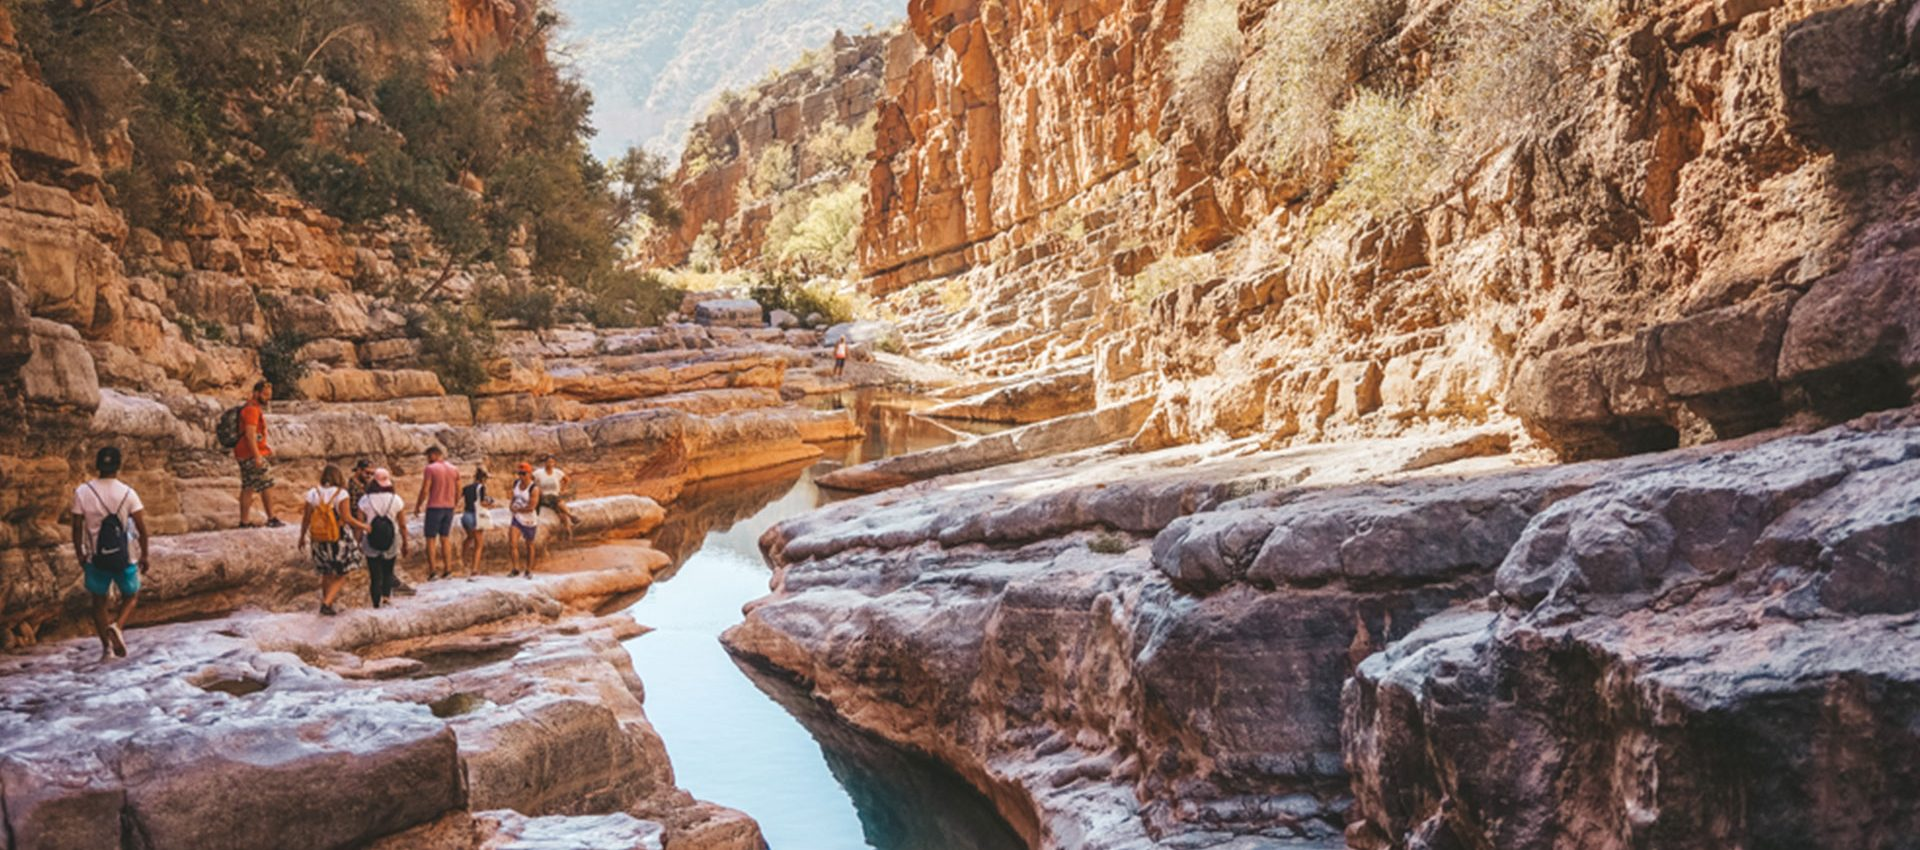 The hike up to the natural, fresh water pools of Paradise Valley is an amazing adventure.